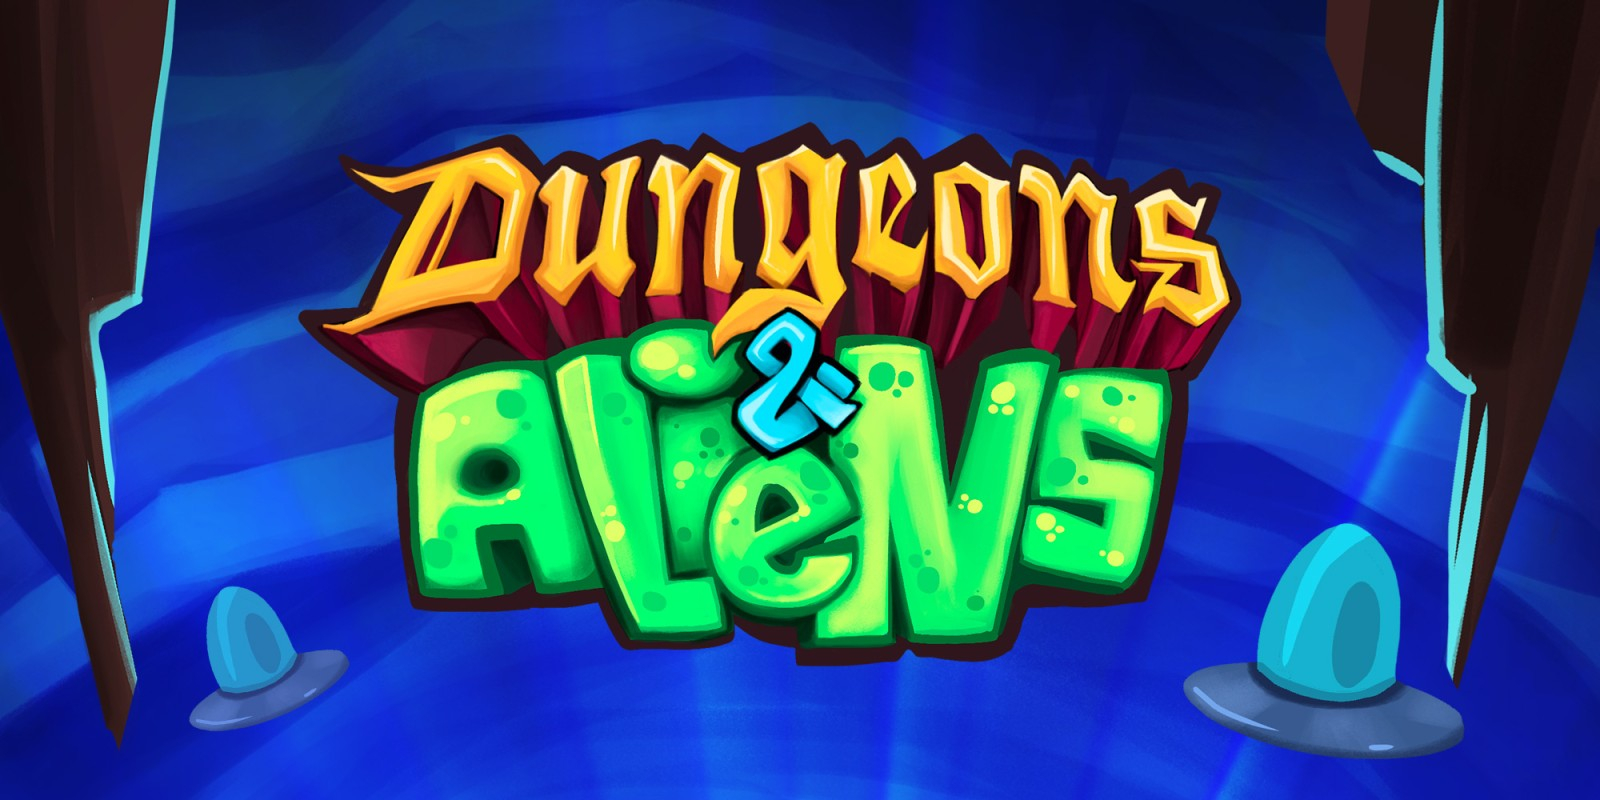 Dungeons and Aliens Masthead